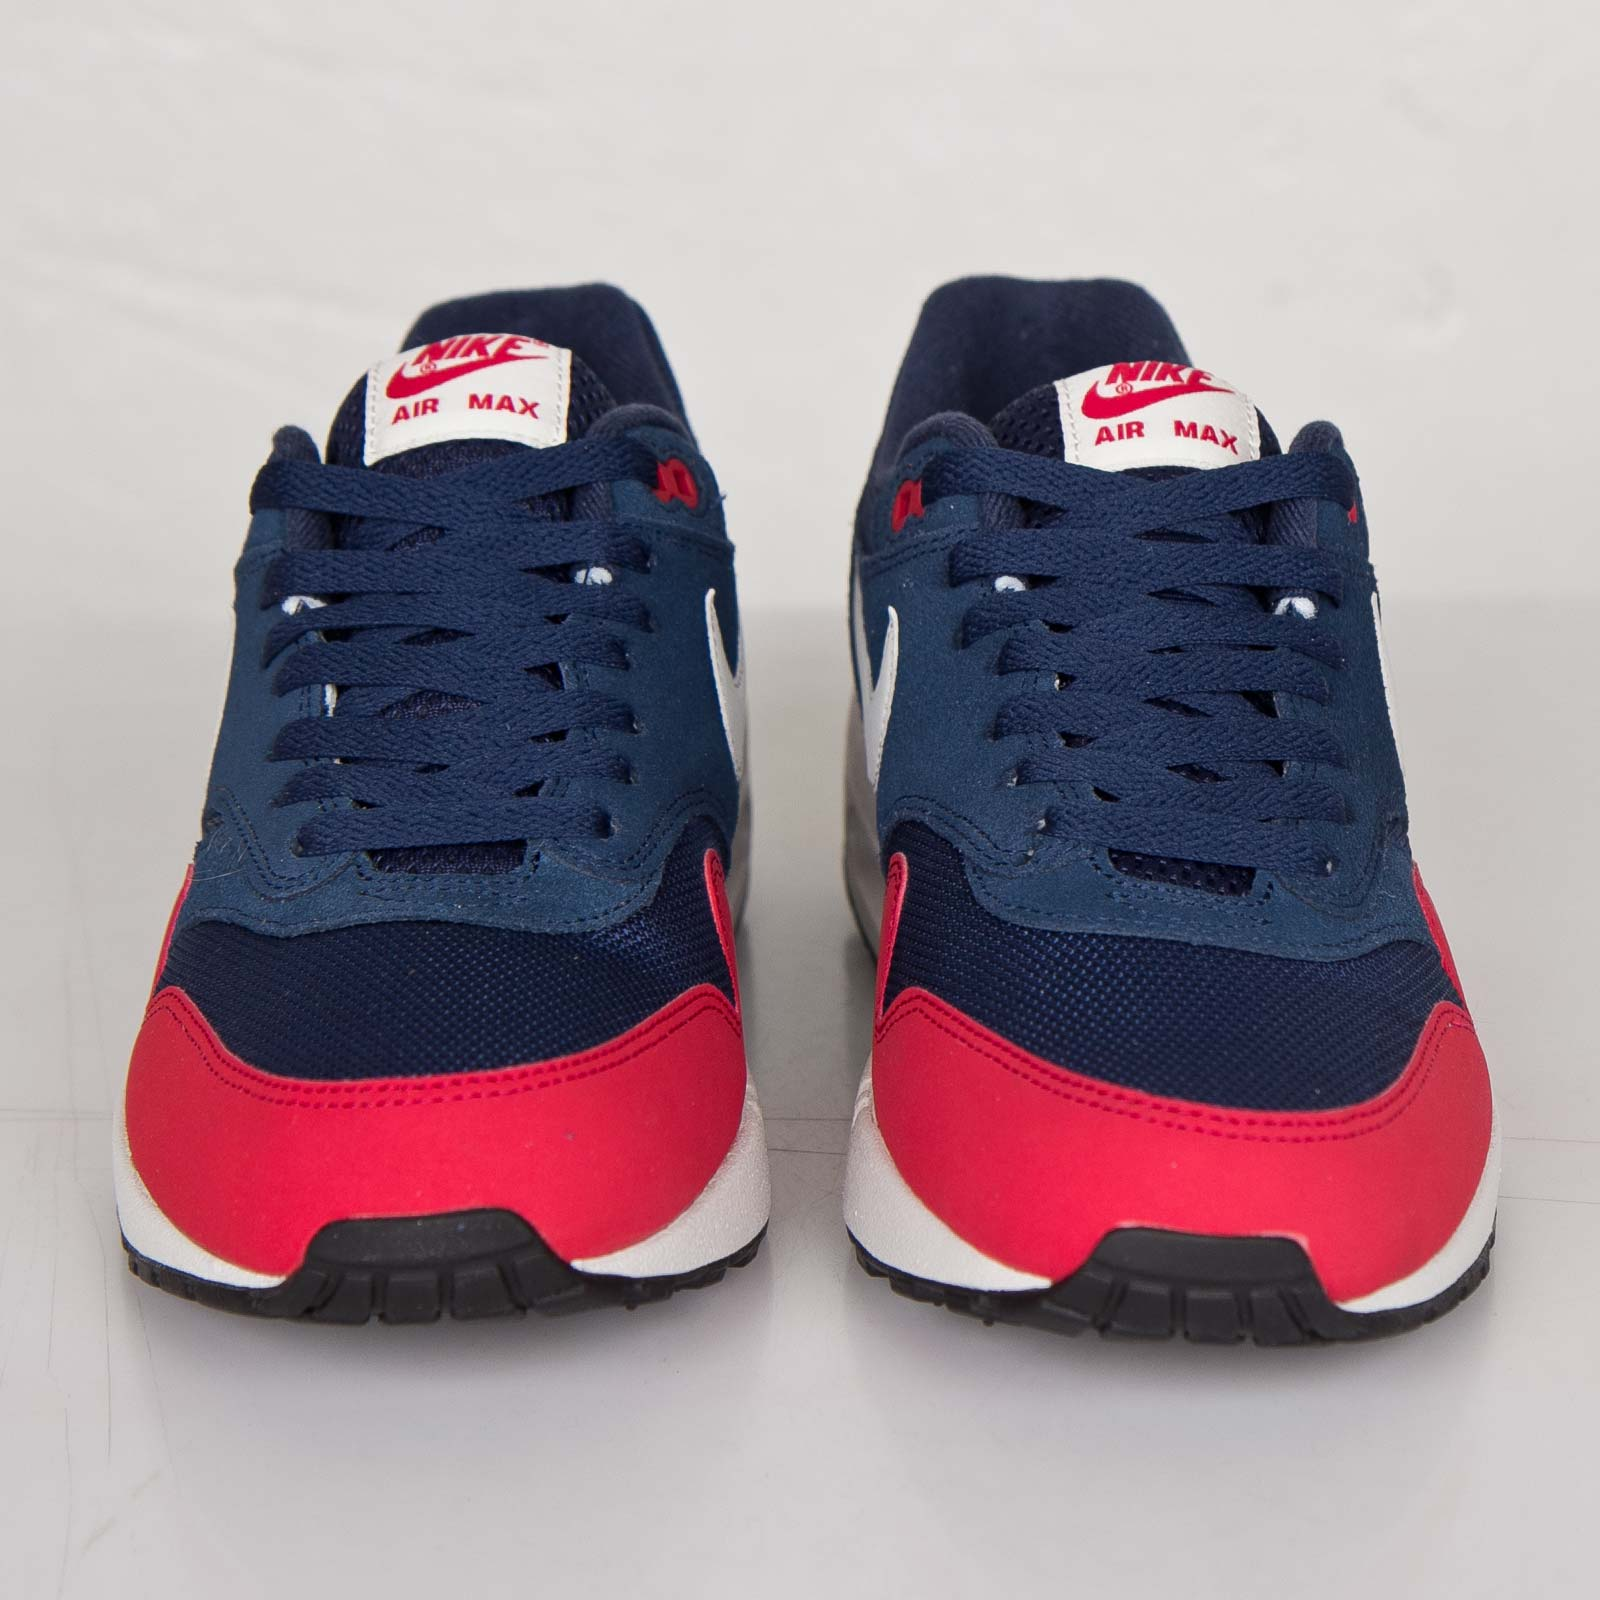 check out 186b9 50c37 Nike Air Max 1 Essential - 537383-400 - Sneakersnstuff   sneakers    streetwear online since 1999